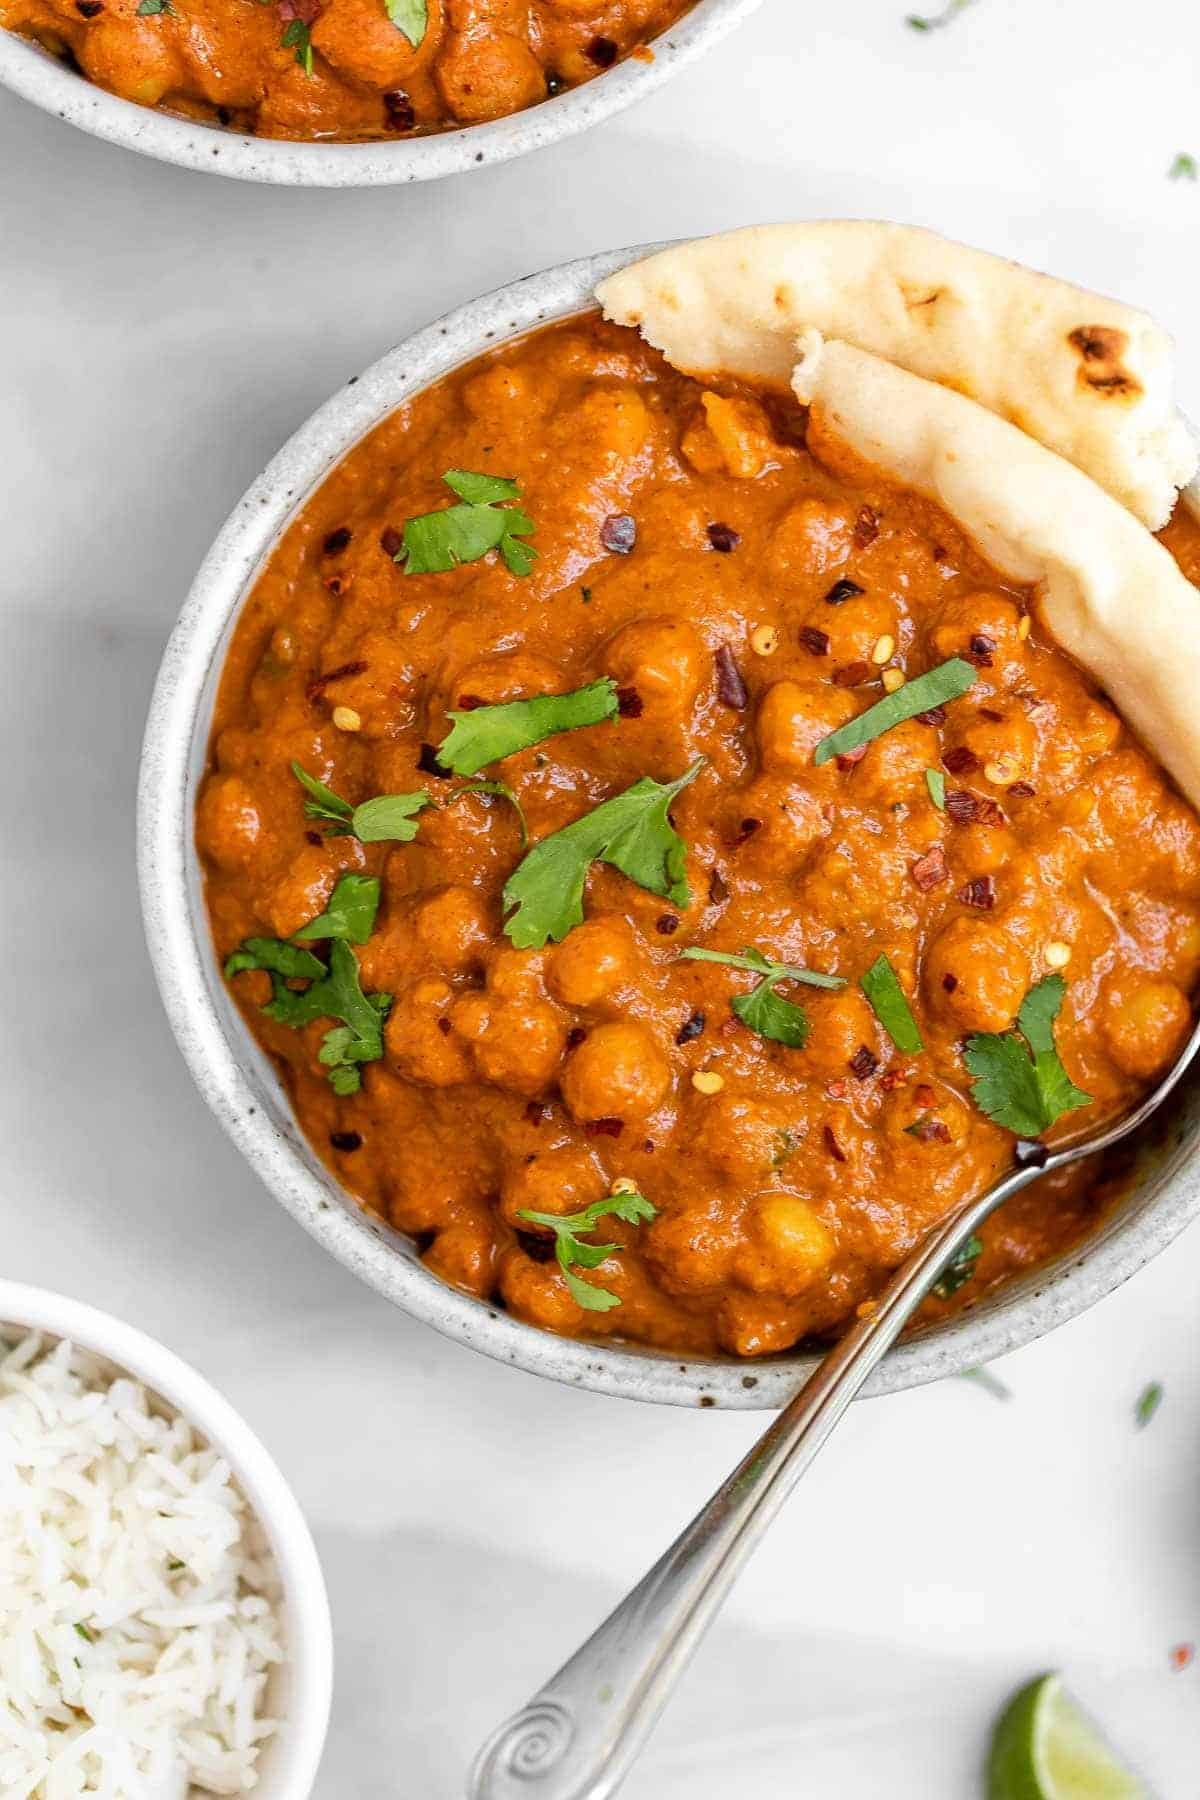 Close up image of the vegan chickpea tikka masala in a round bowl.